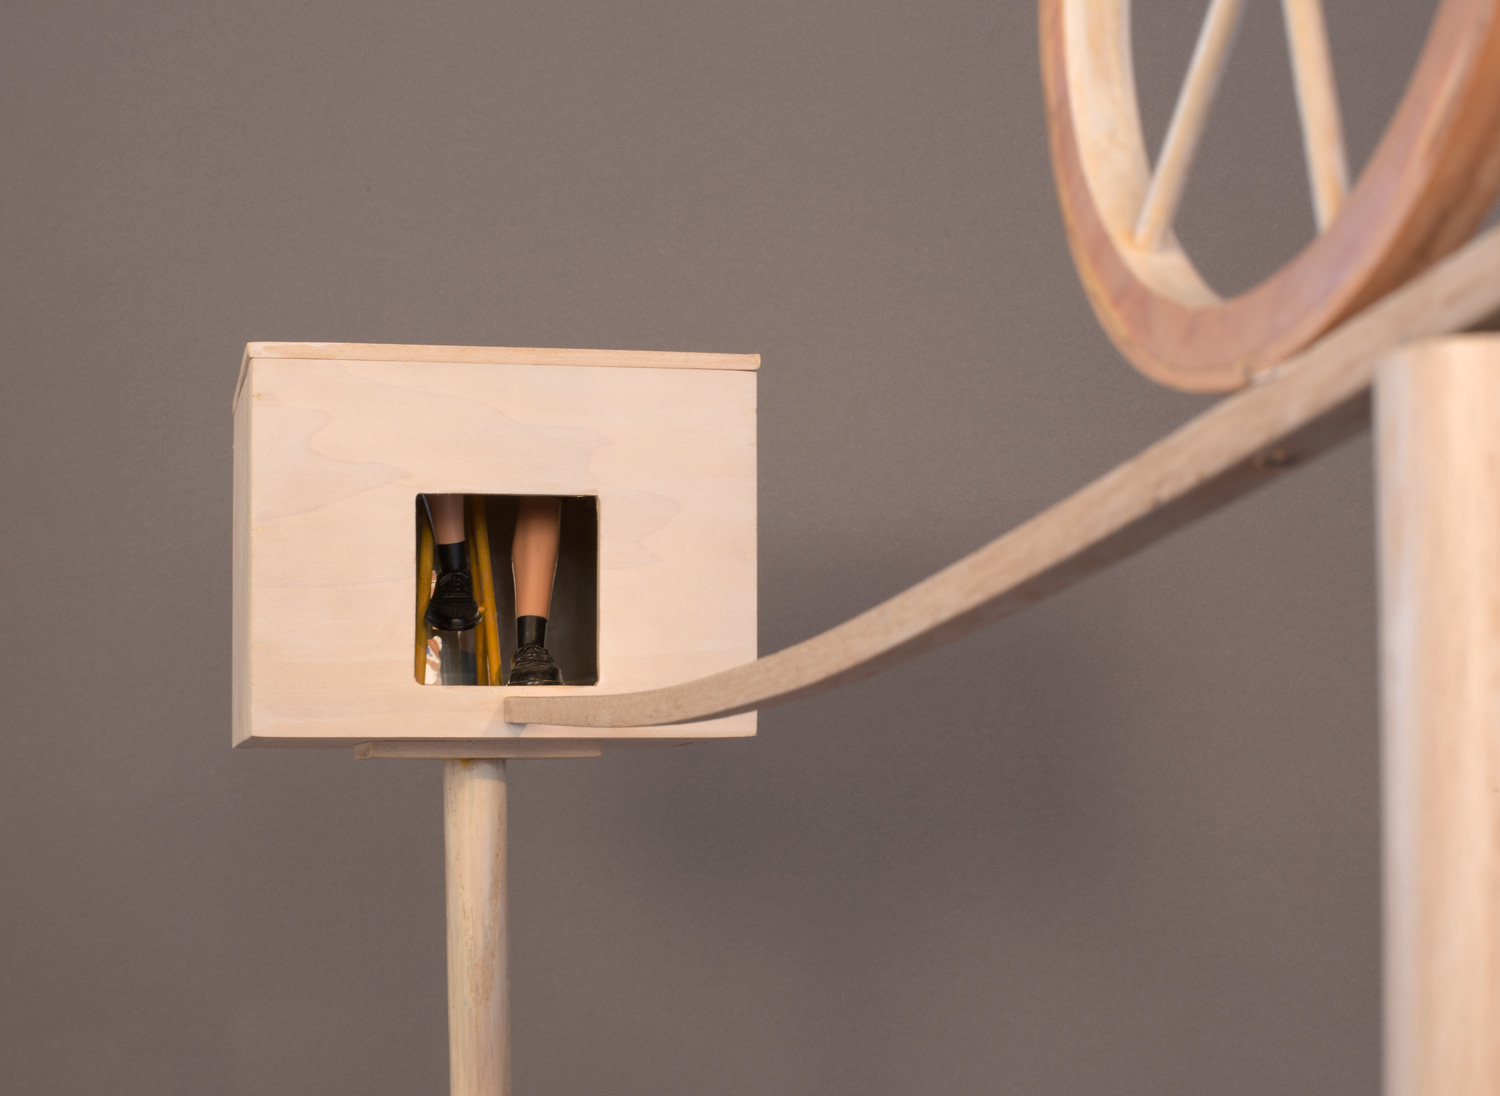 """""""Tightrope"""" (detail), 64"""" h x 7"""" w x 42"""" d, wood, mylar, solar collector and light bulb, found object; ©Tom Gormally 2014"""